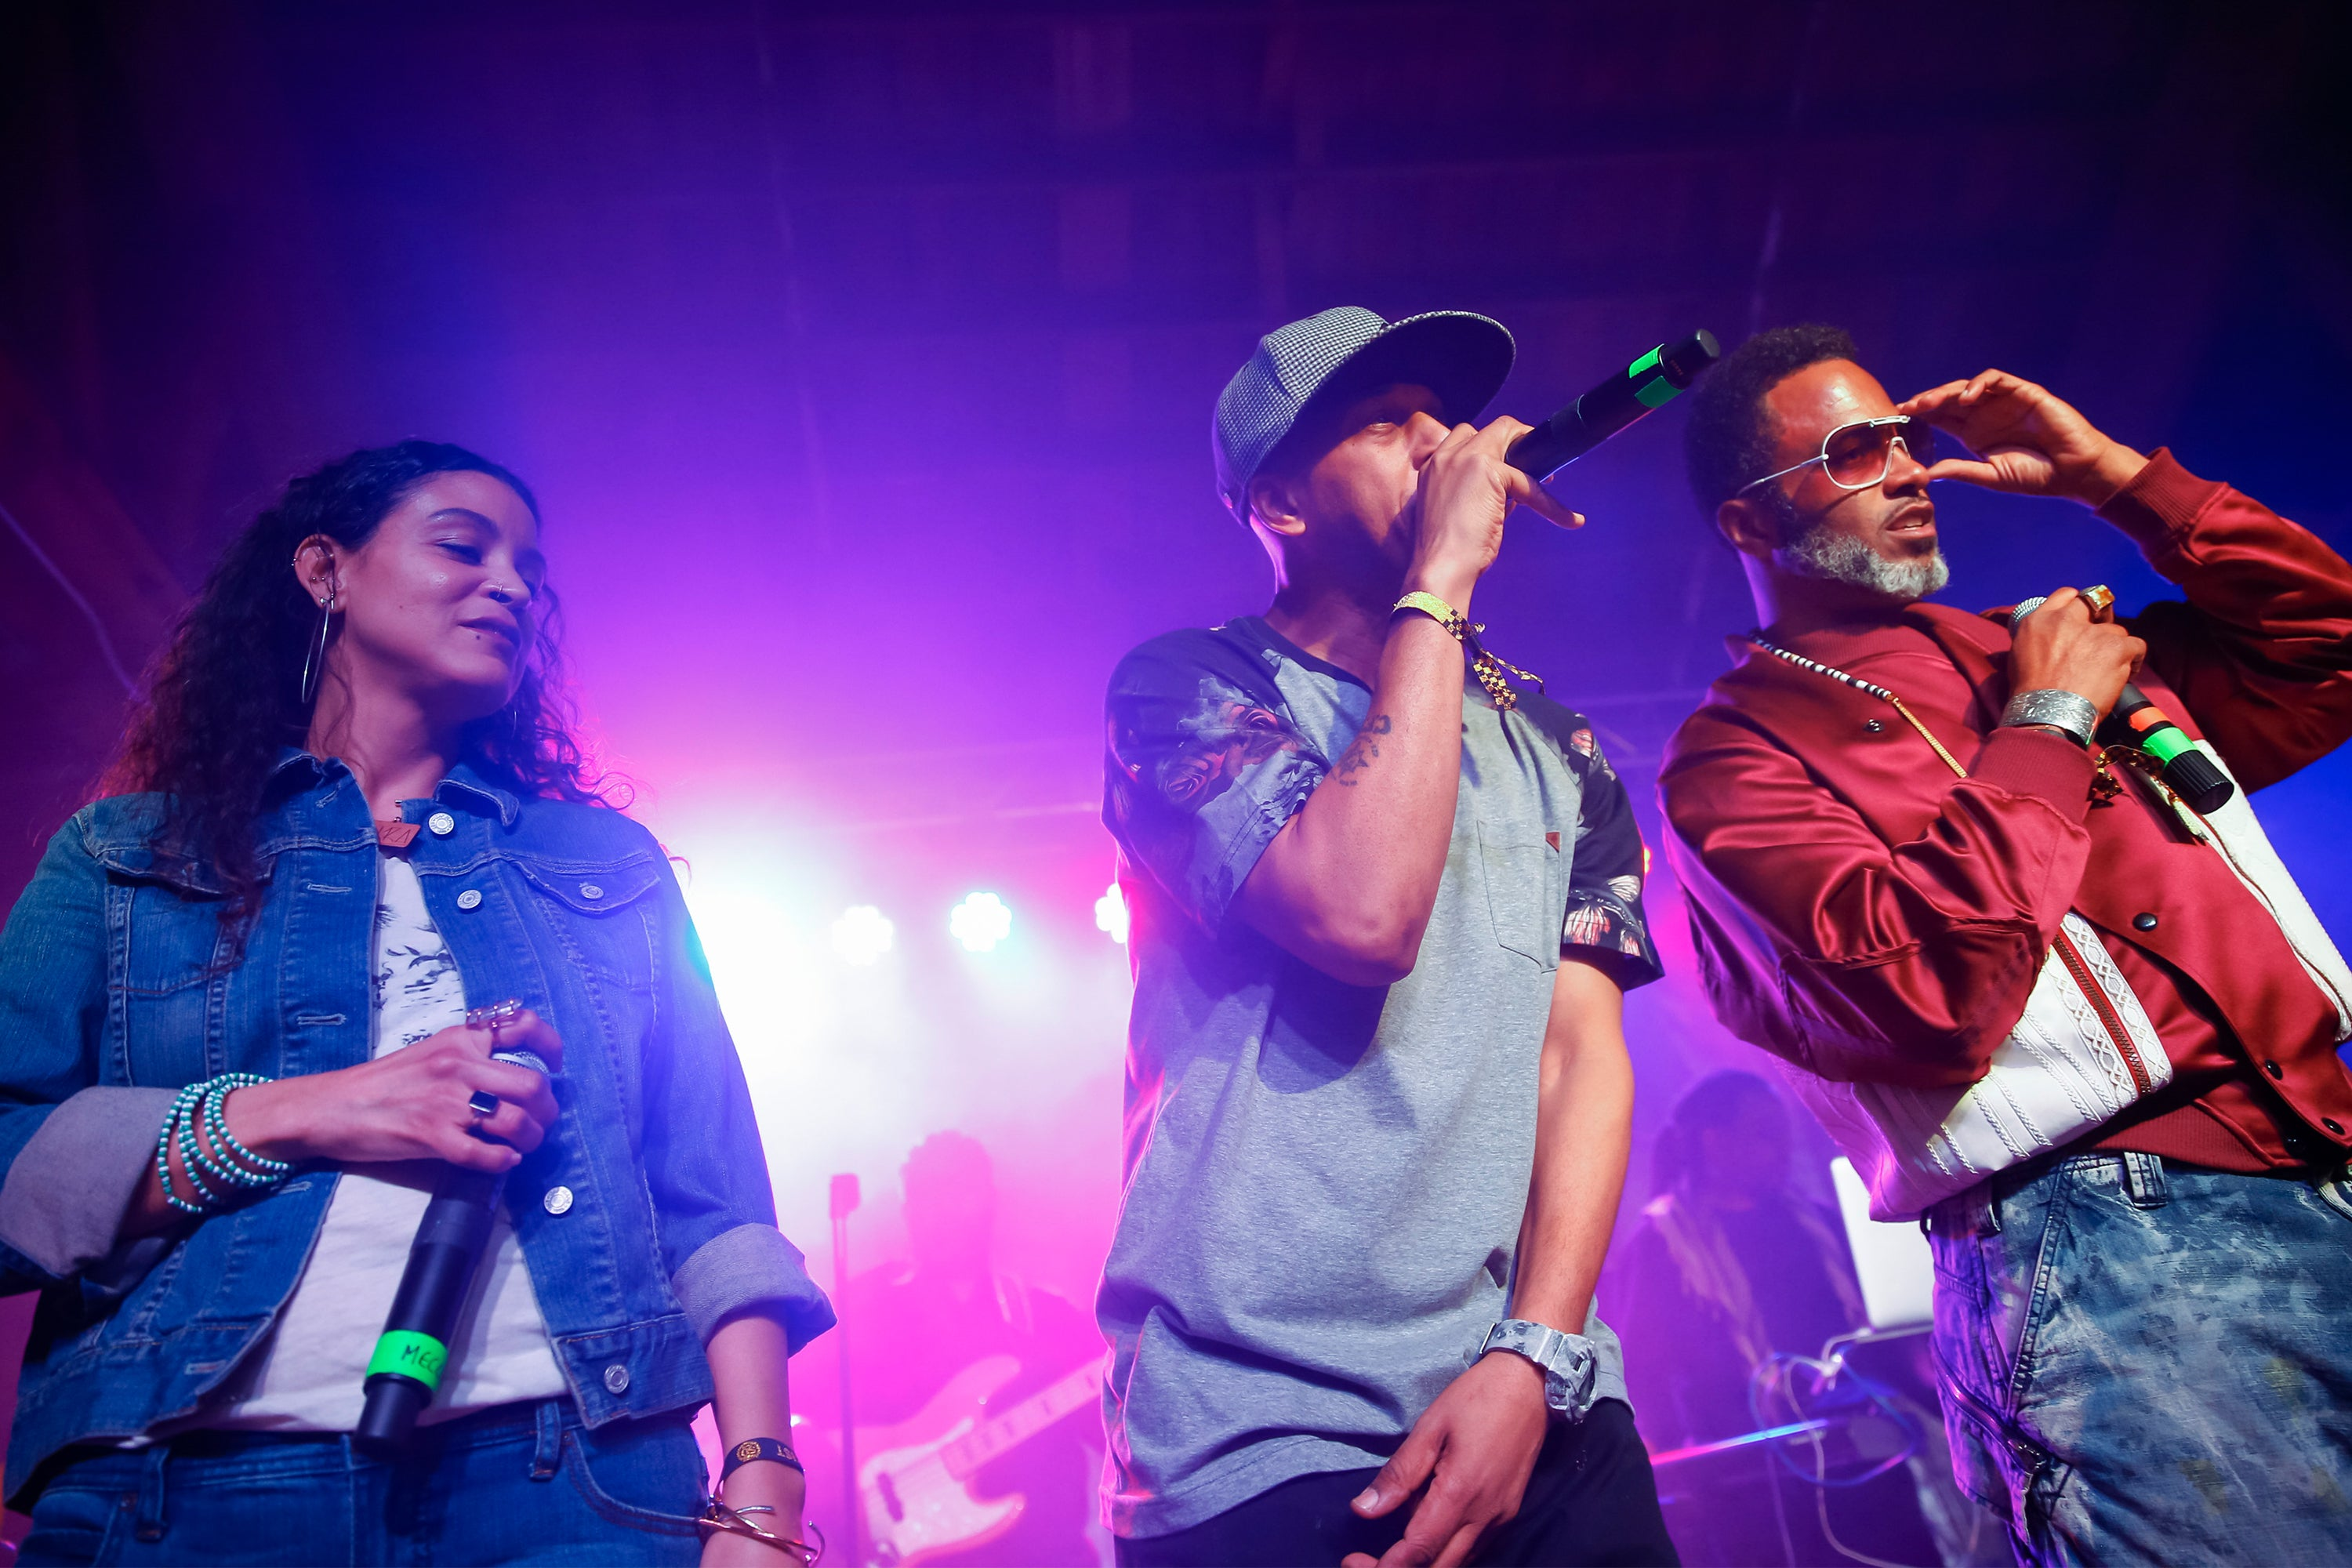 Digable Planets performs at the House Of Vans Opening In Chicago, Illinois on Feb 3, 2017. (Photo by Michael Hickey/Getty Images)